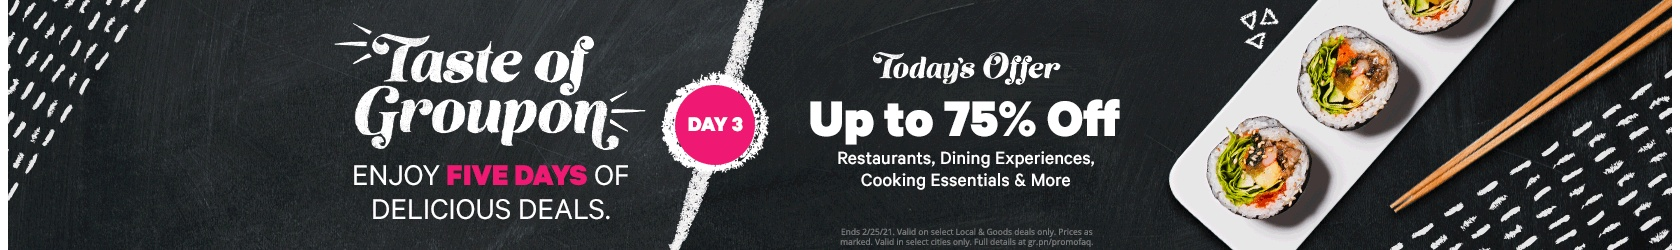 Up to 75% off Food & Drink